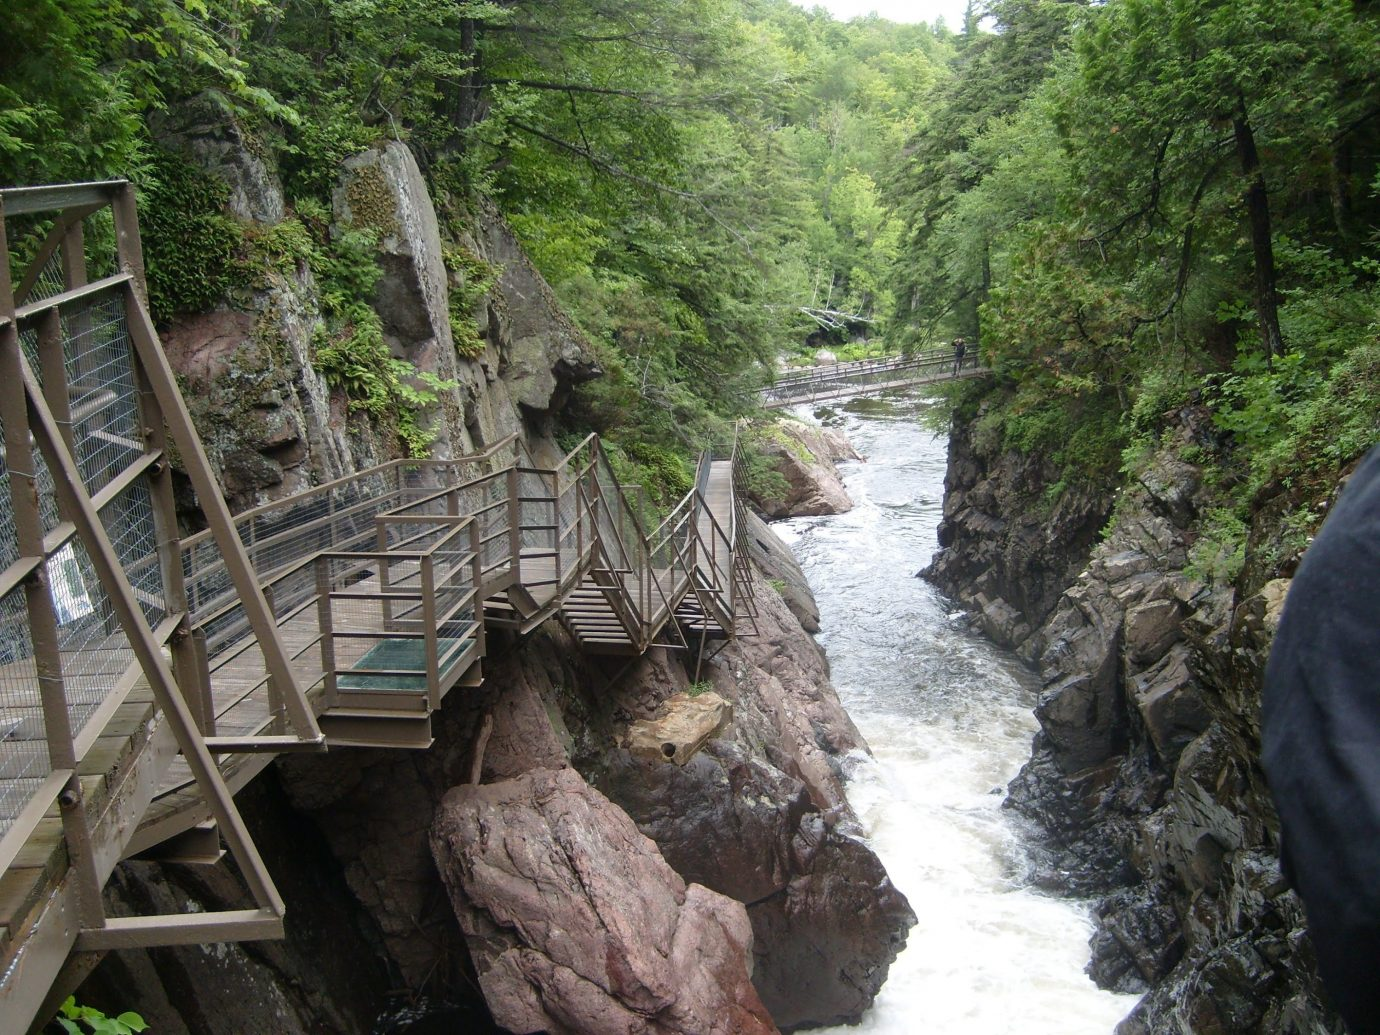 Boutique Hotels Hotels Outdoors + Adventure Trip Ideas Weekend Getaways tree outdoor water nature reserve watercourse stream water resources Nature River creek rock state park rapid water feature Forest ravine Jungle landscape tributary wood surrounded